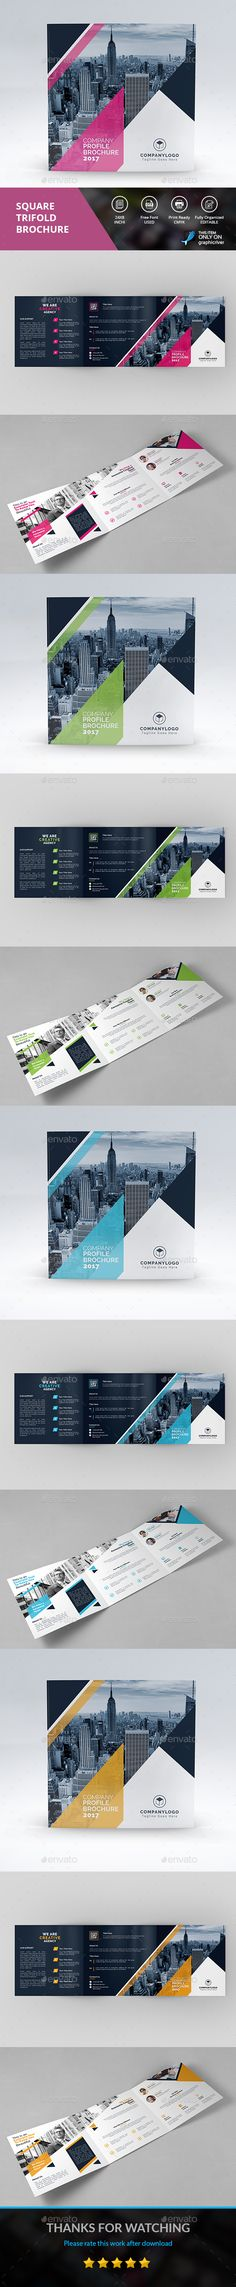 SQUARE TRI-FOLD - #Corporate #Brochures Download here: https://graphicriver.net/item/square-trifold/19446763?ref=alena994